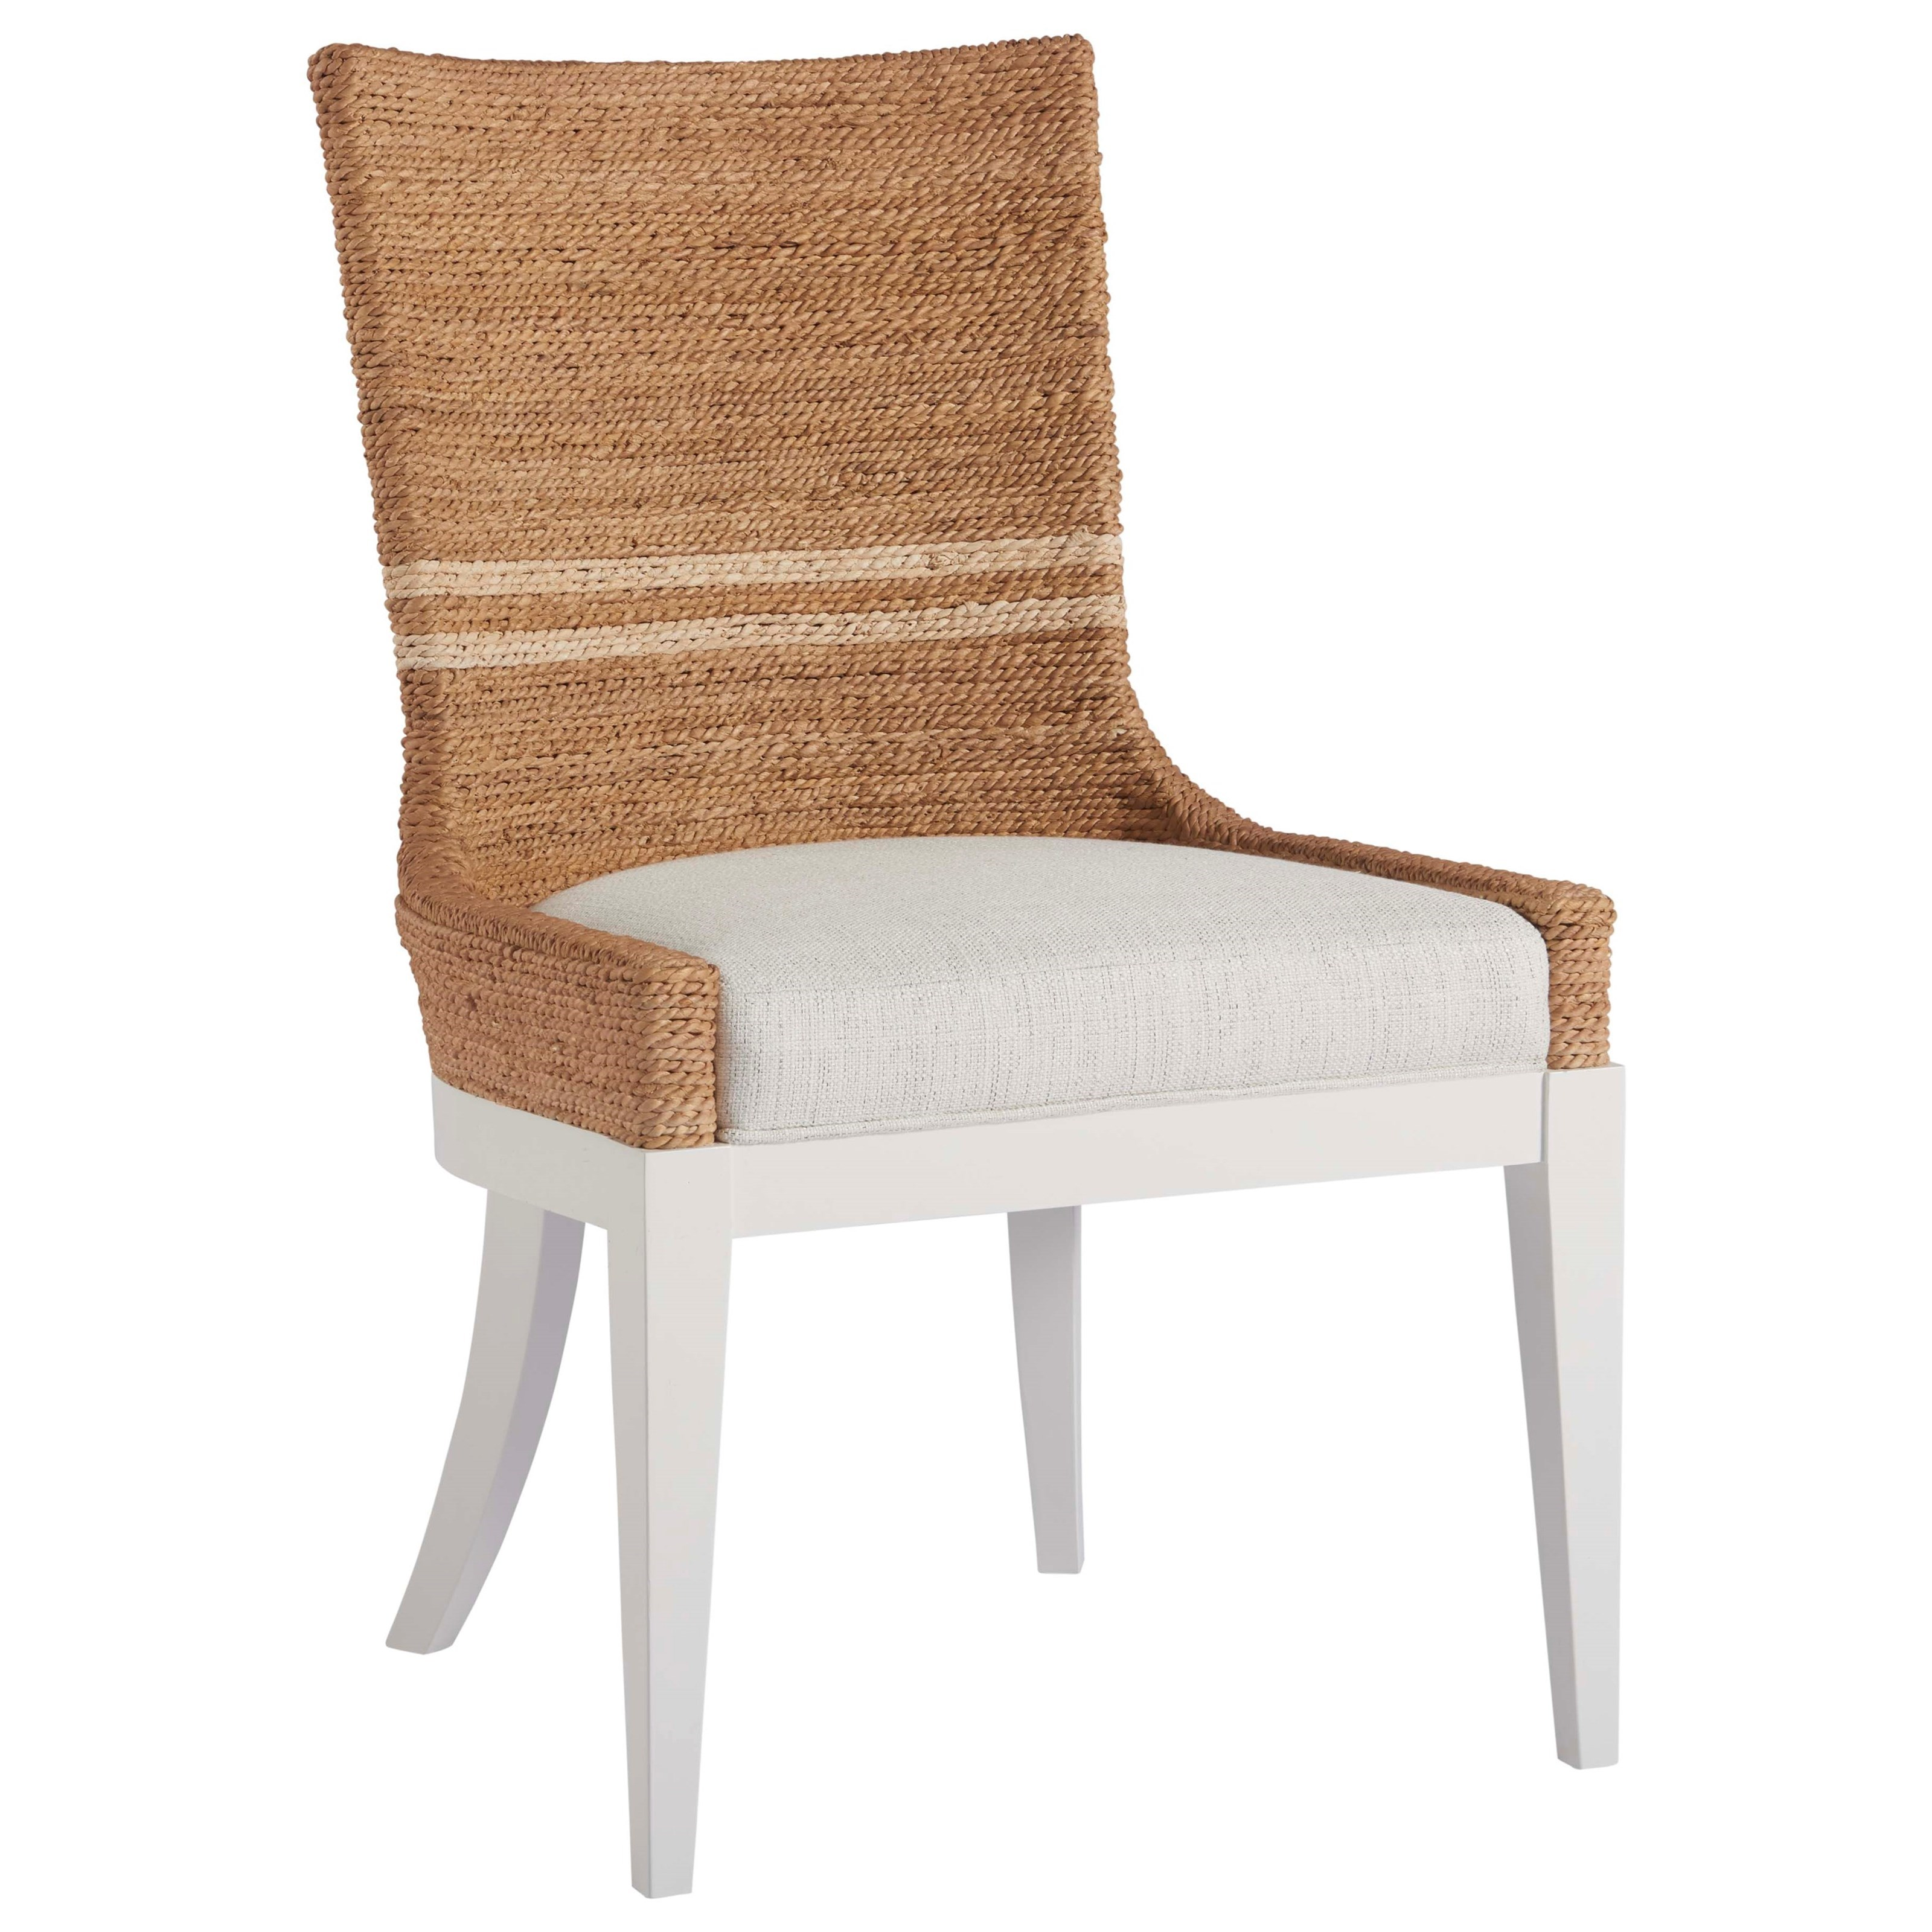 Abaca Mattress Coastal Living Home Escape Siesta Key Dining Chair With Woven Abaca Back By Universal At Belfort Furniture